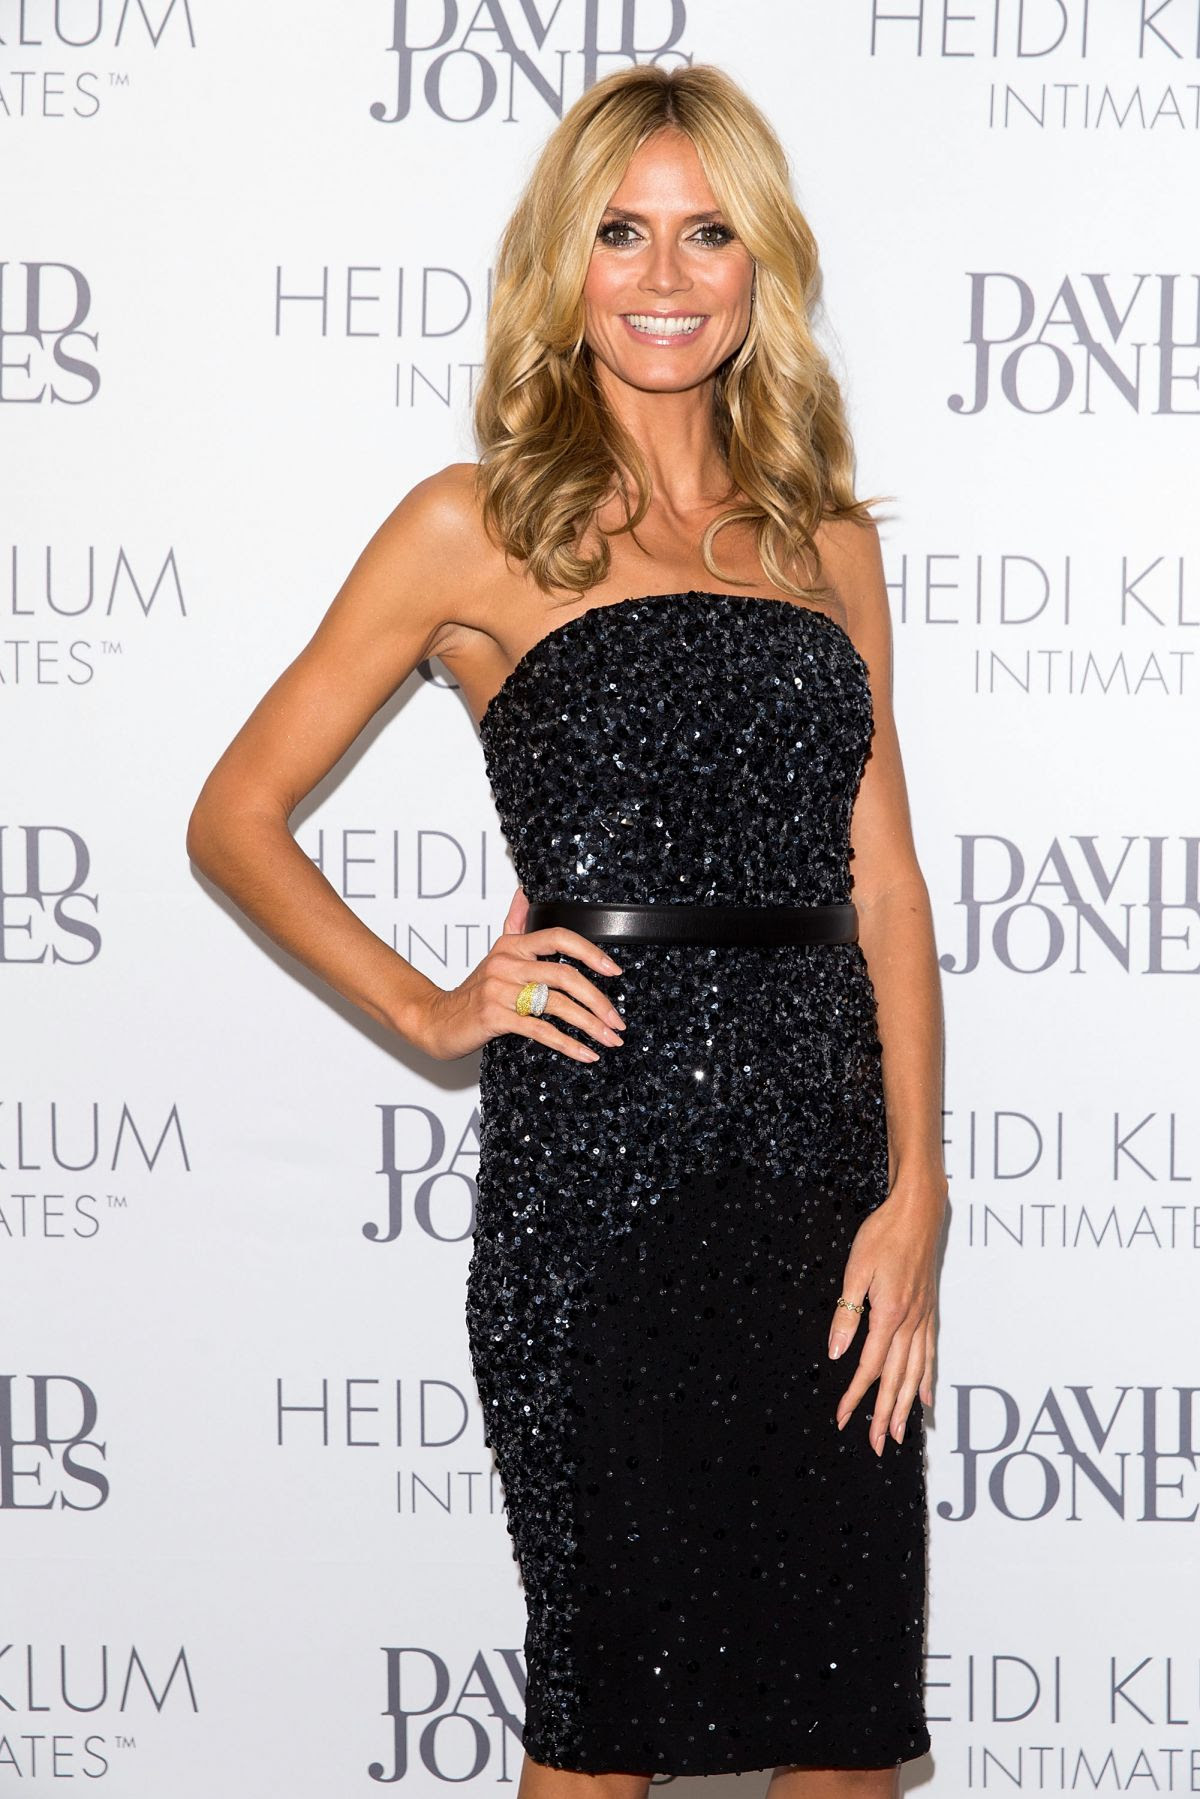 HEIDI KLUM at Intimate Dinner hosted by David Jones at Guillaume in Sydney